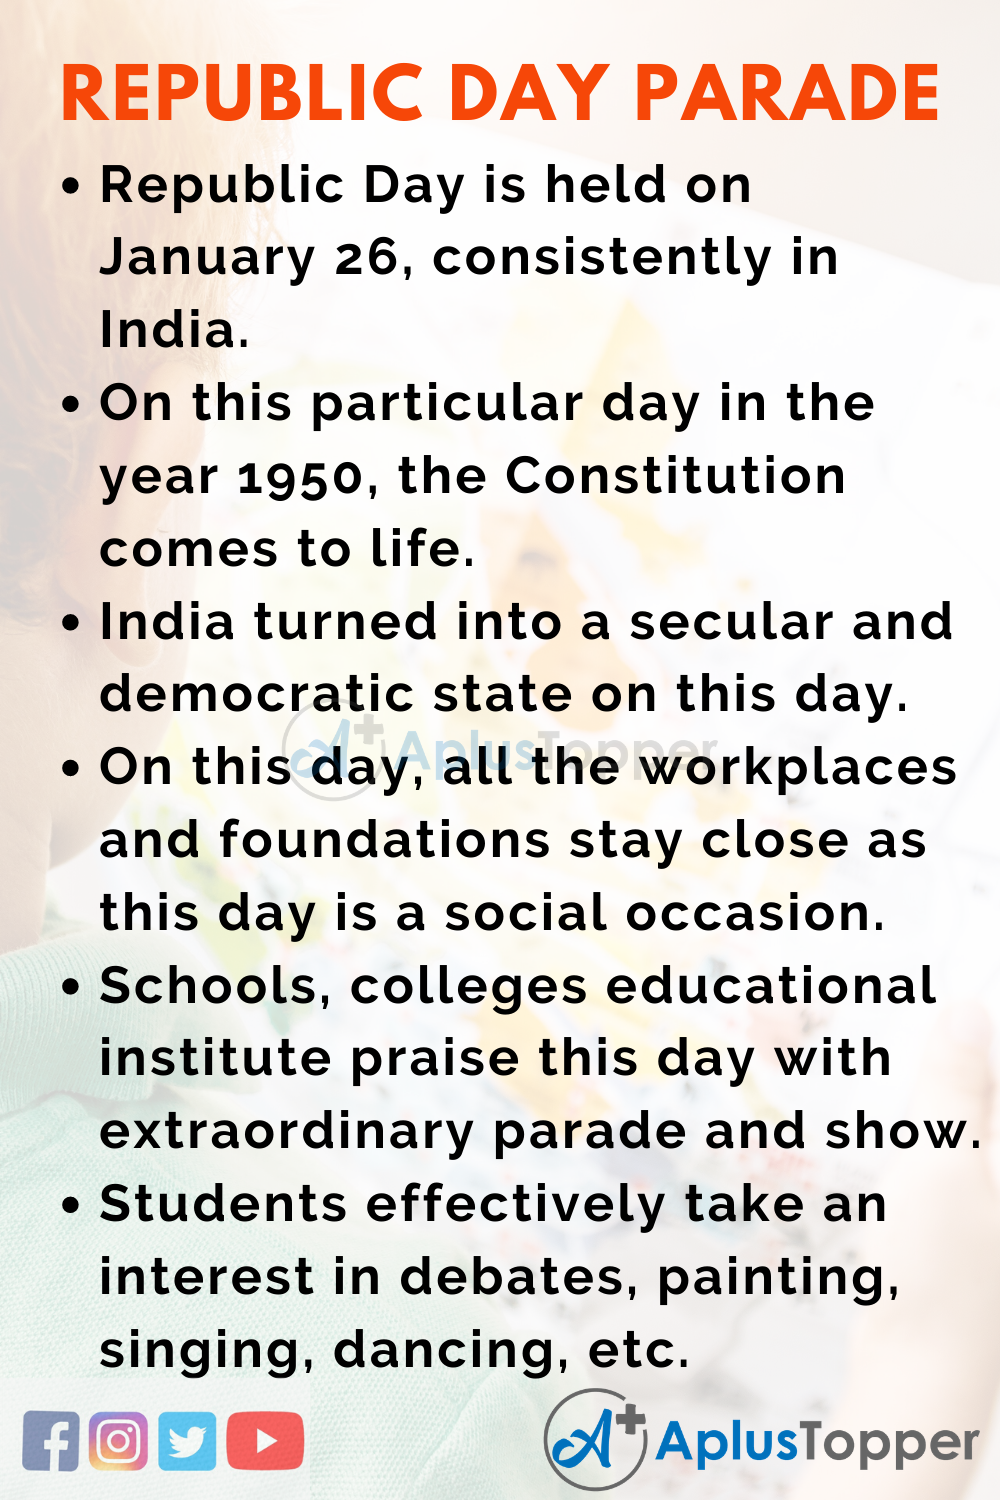 10 Lines of Republic Day Parade